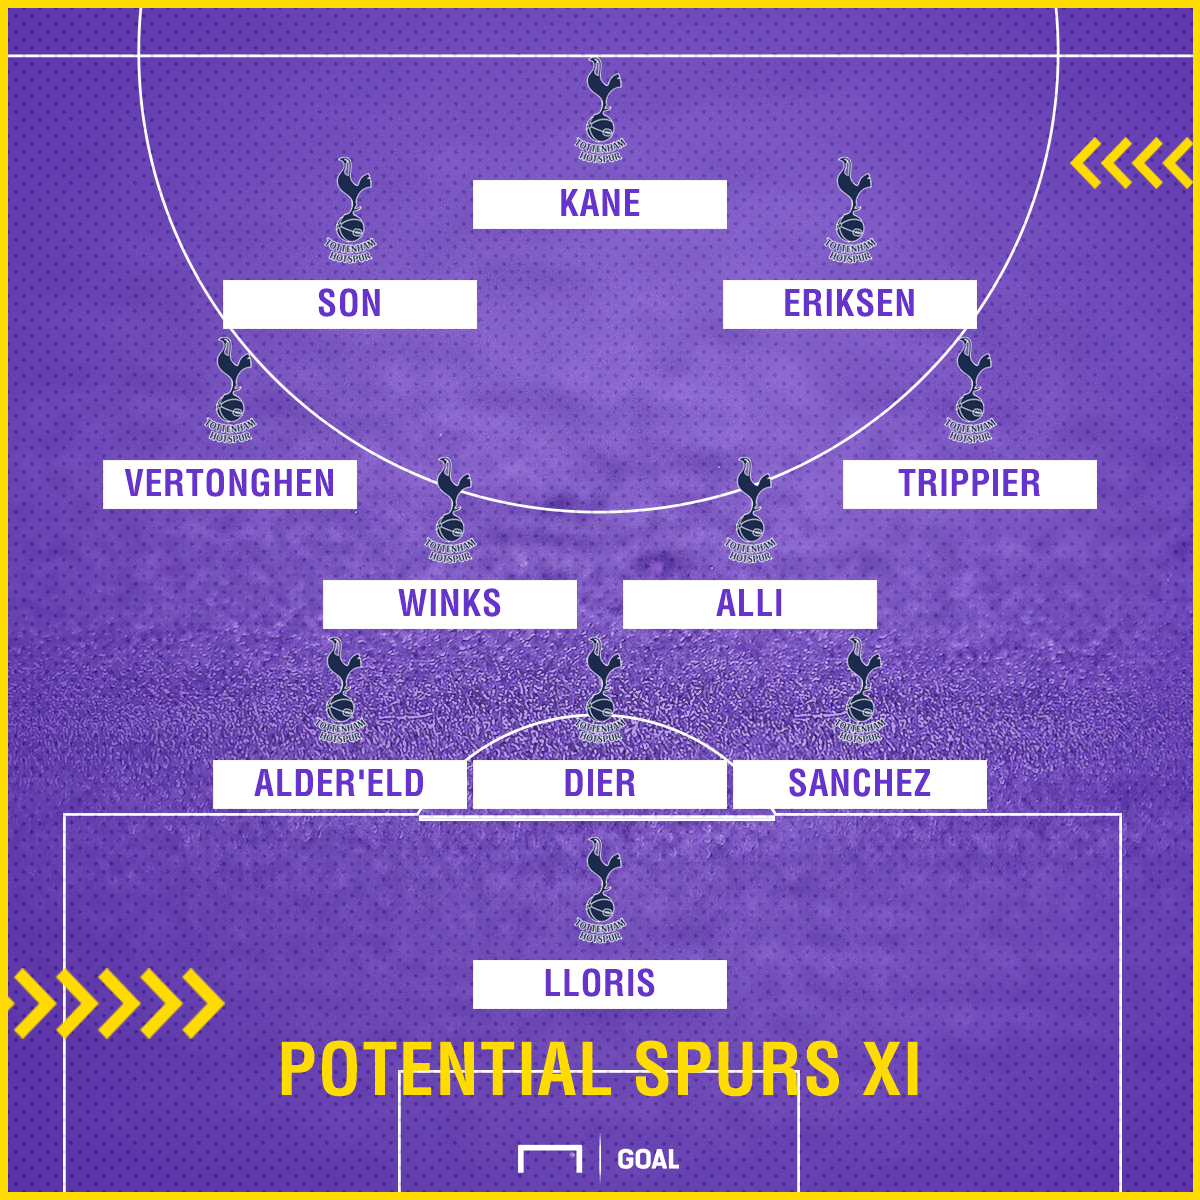 Liverpool Team News Injuries Suspensions And Line Up Vs: Tottenham Team News: Injuries, Suspensions And Line-up Vs